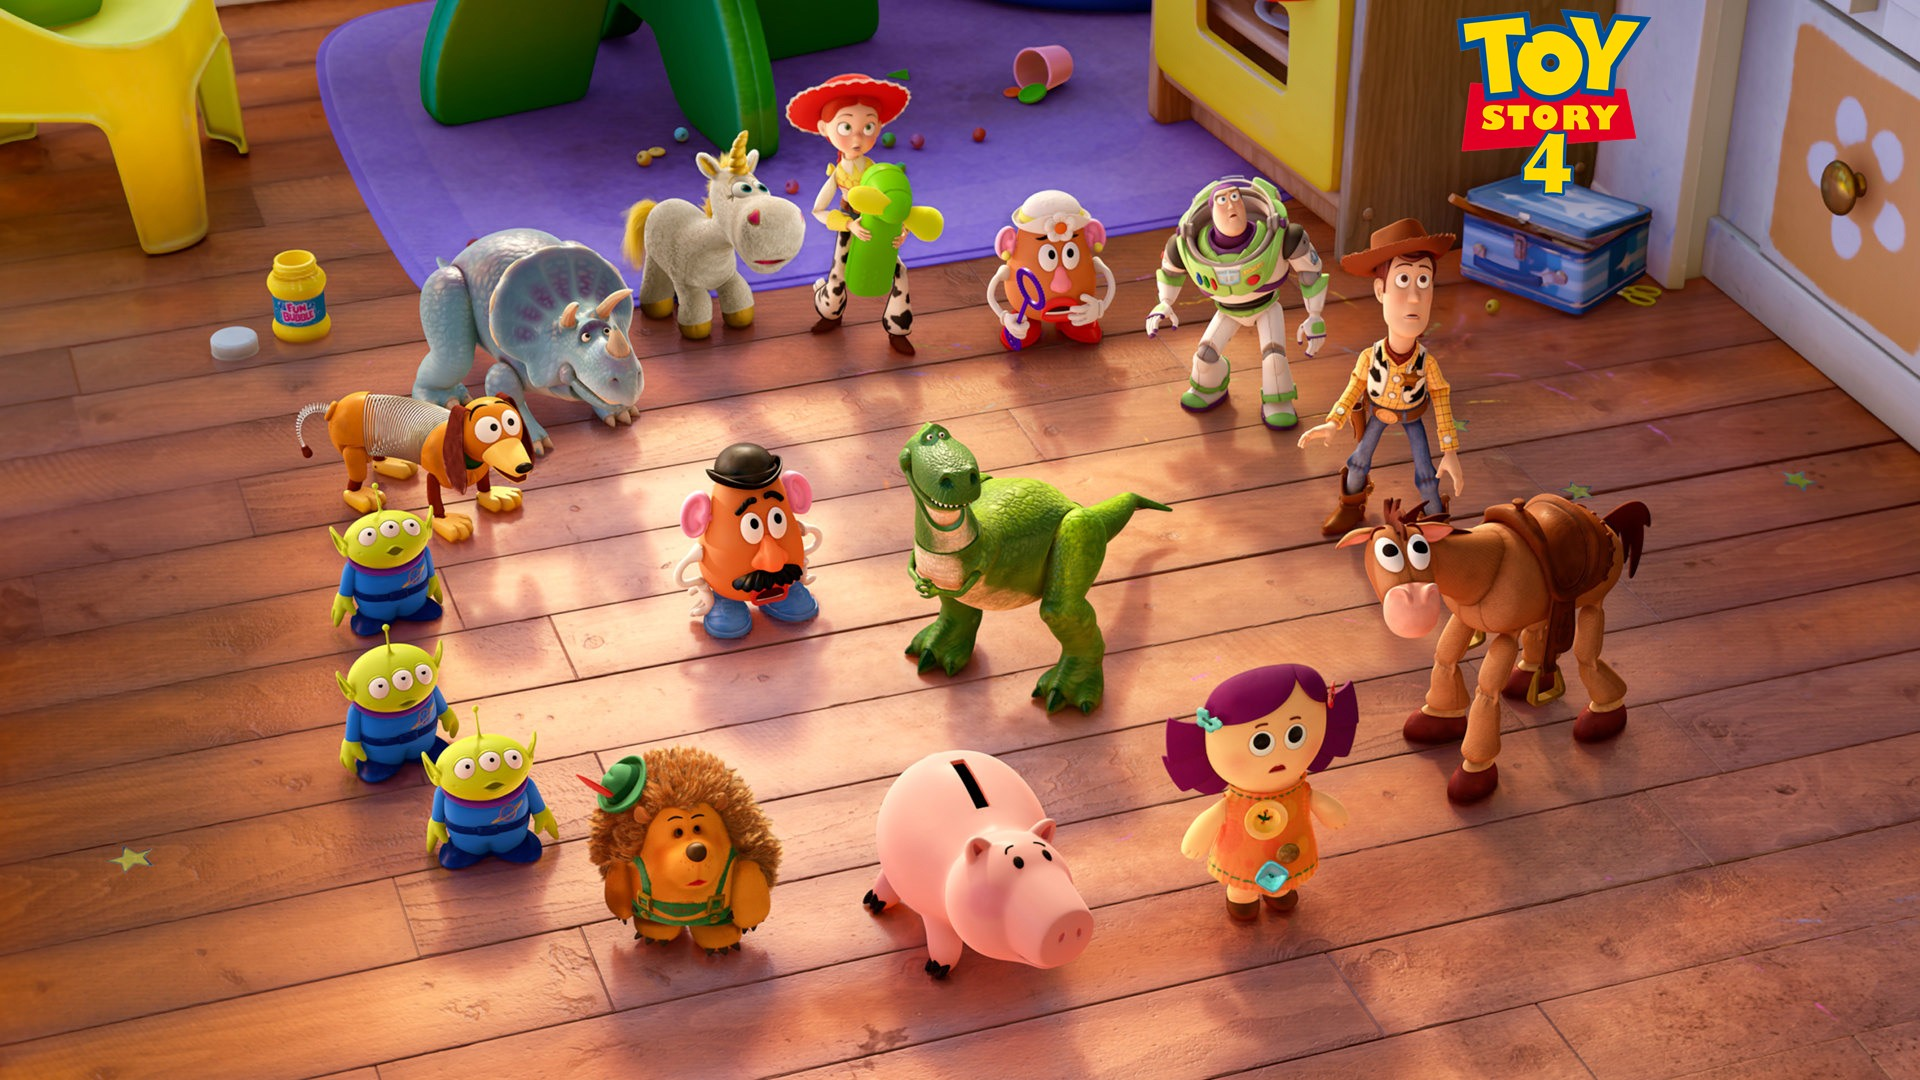 Toy story 4 hd wallpapers free download - Toy story wallpaper ...